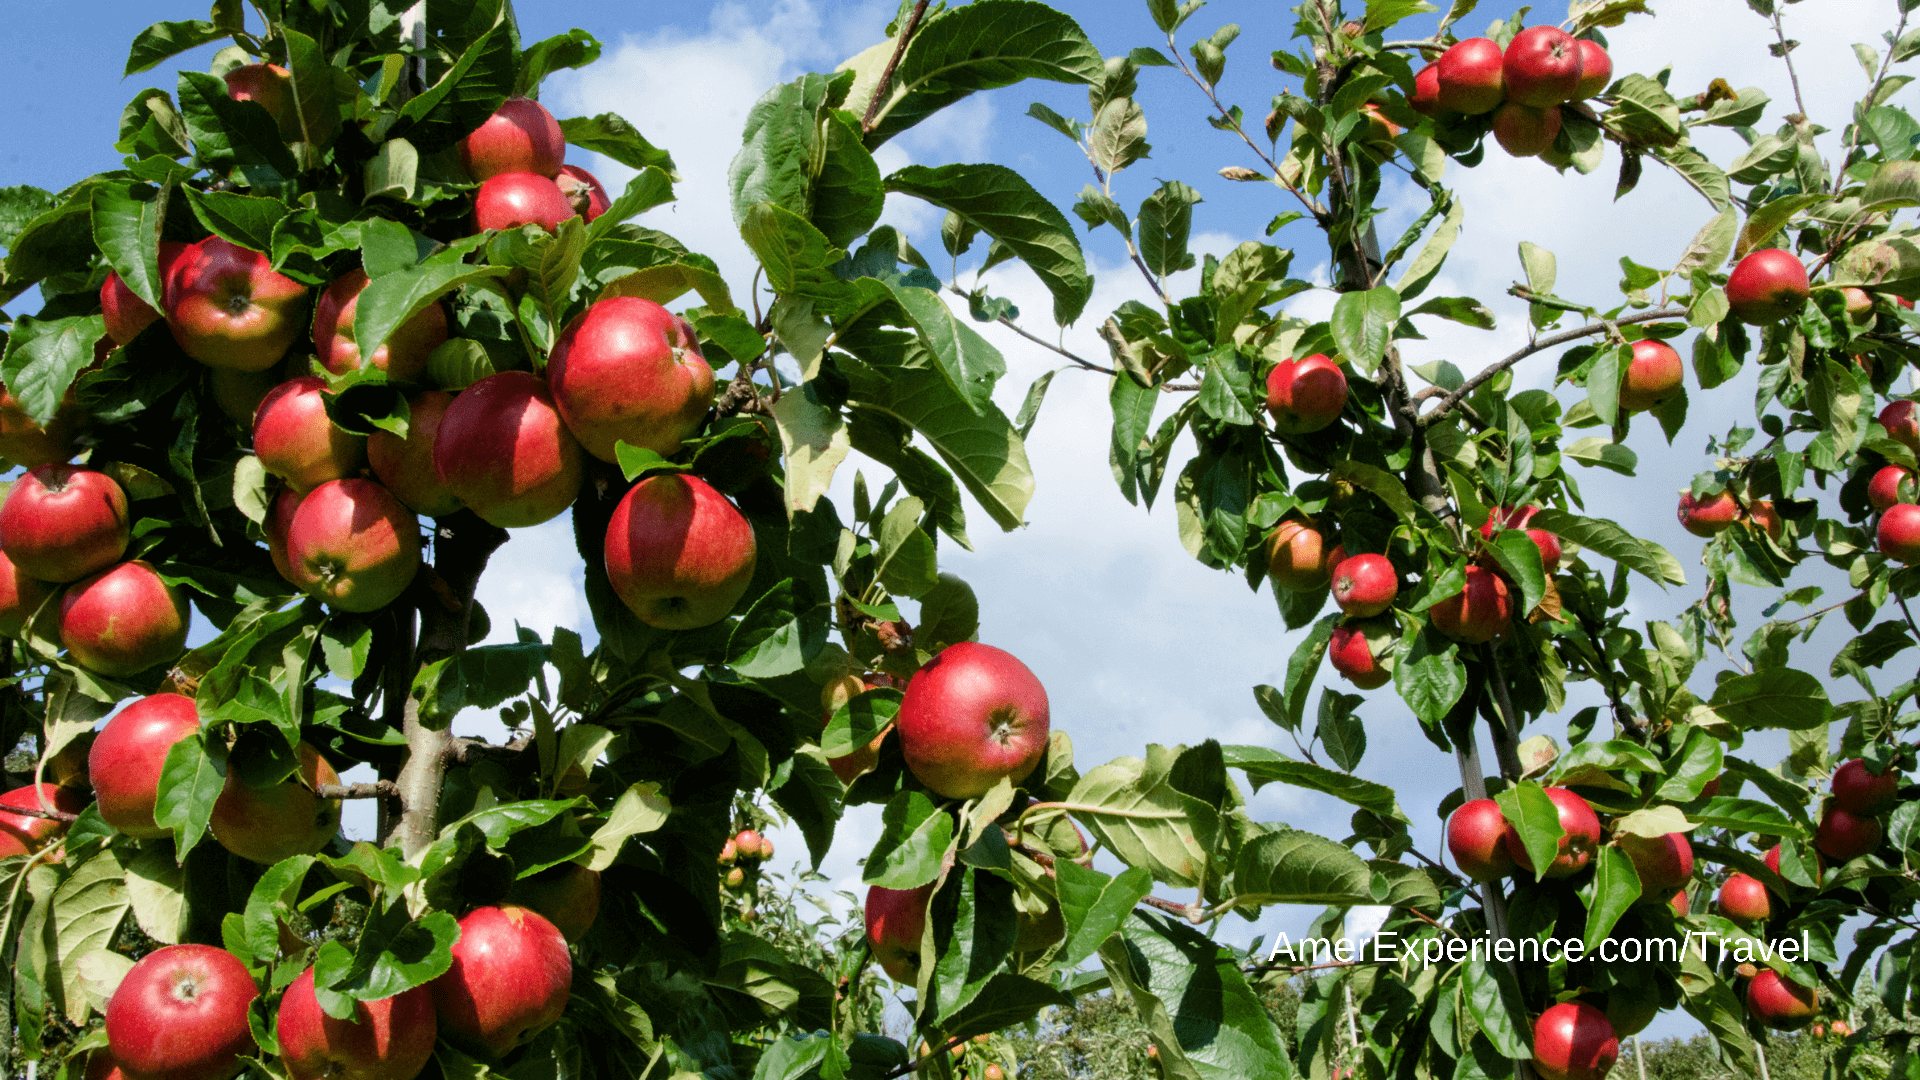 Cider harvesting in Herefordshire: 'the fruit is always in charge'